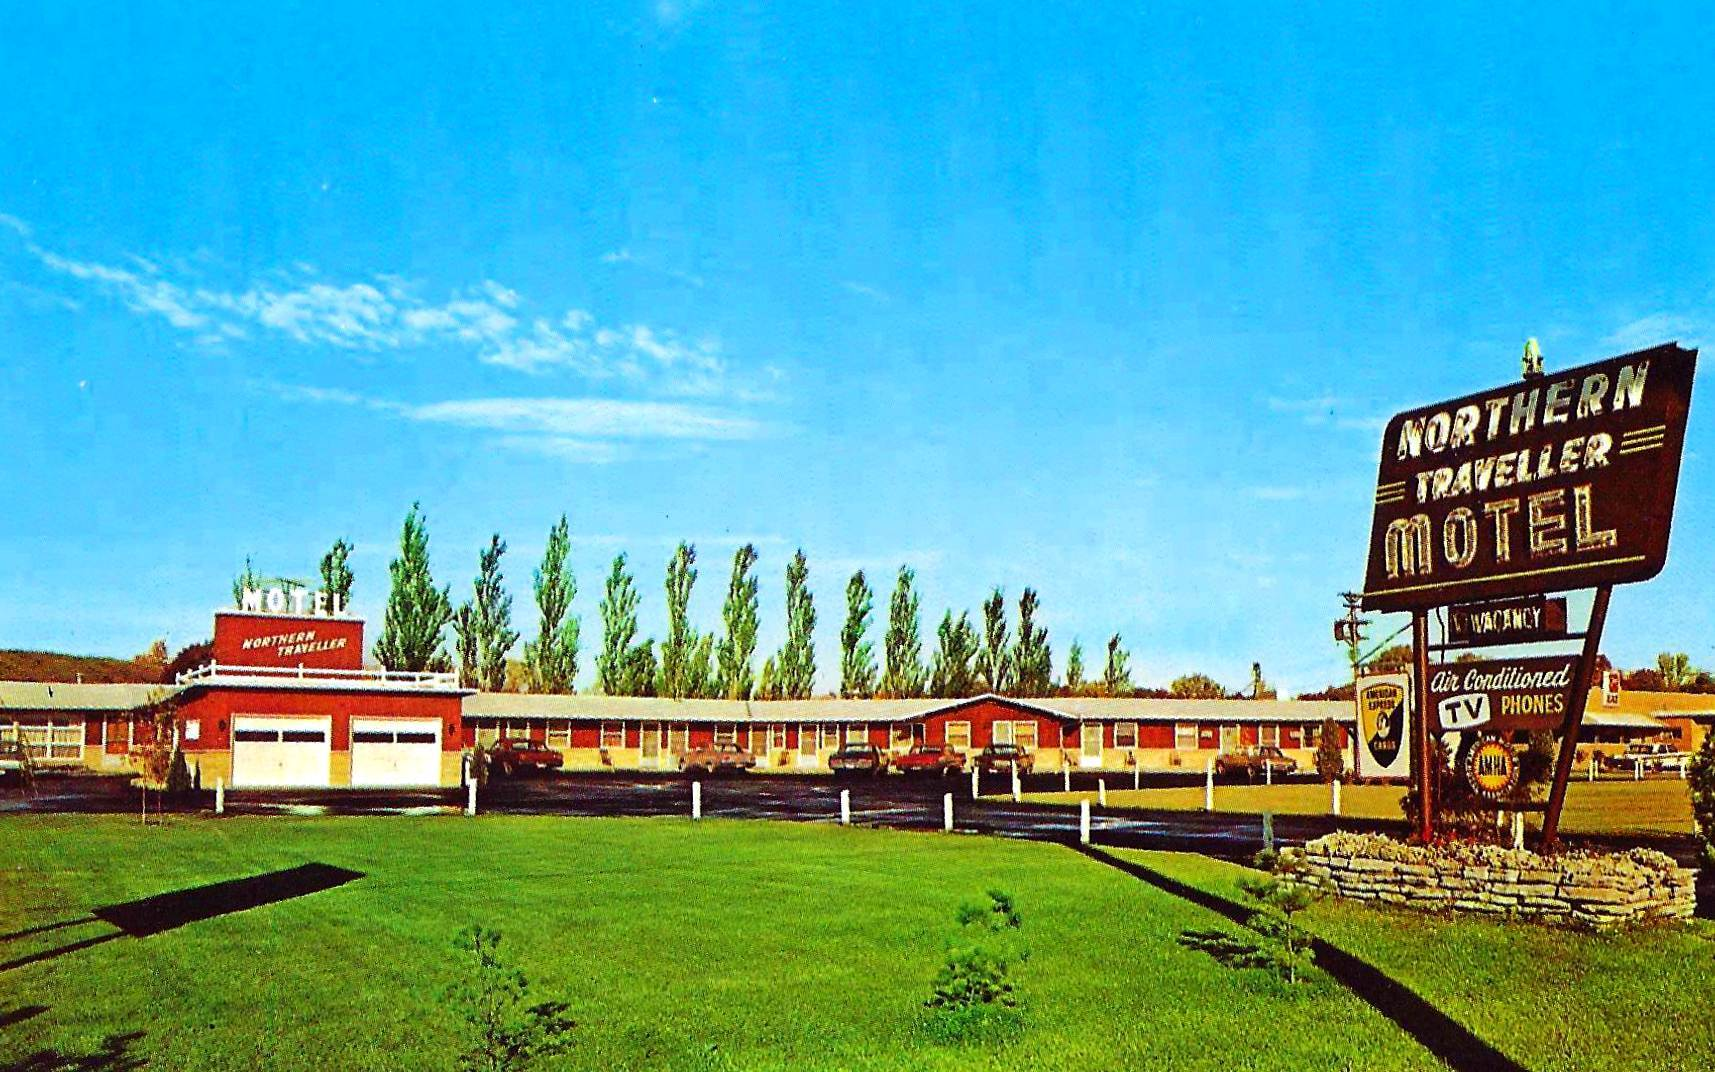 Northern Traveller Motel - Saint Paul, Minnesota U.S.A. - 1960's